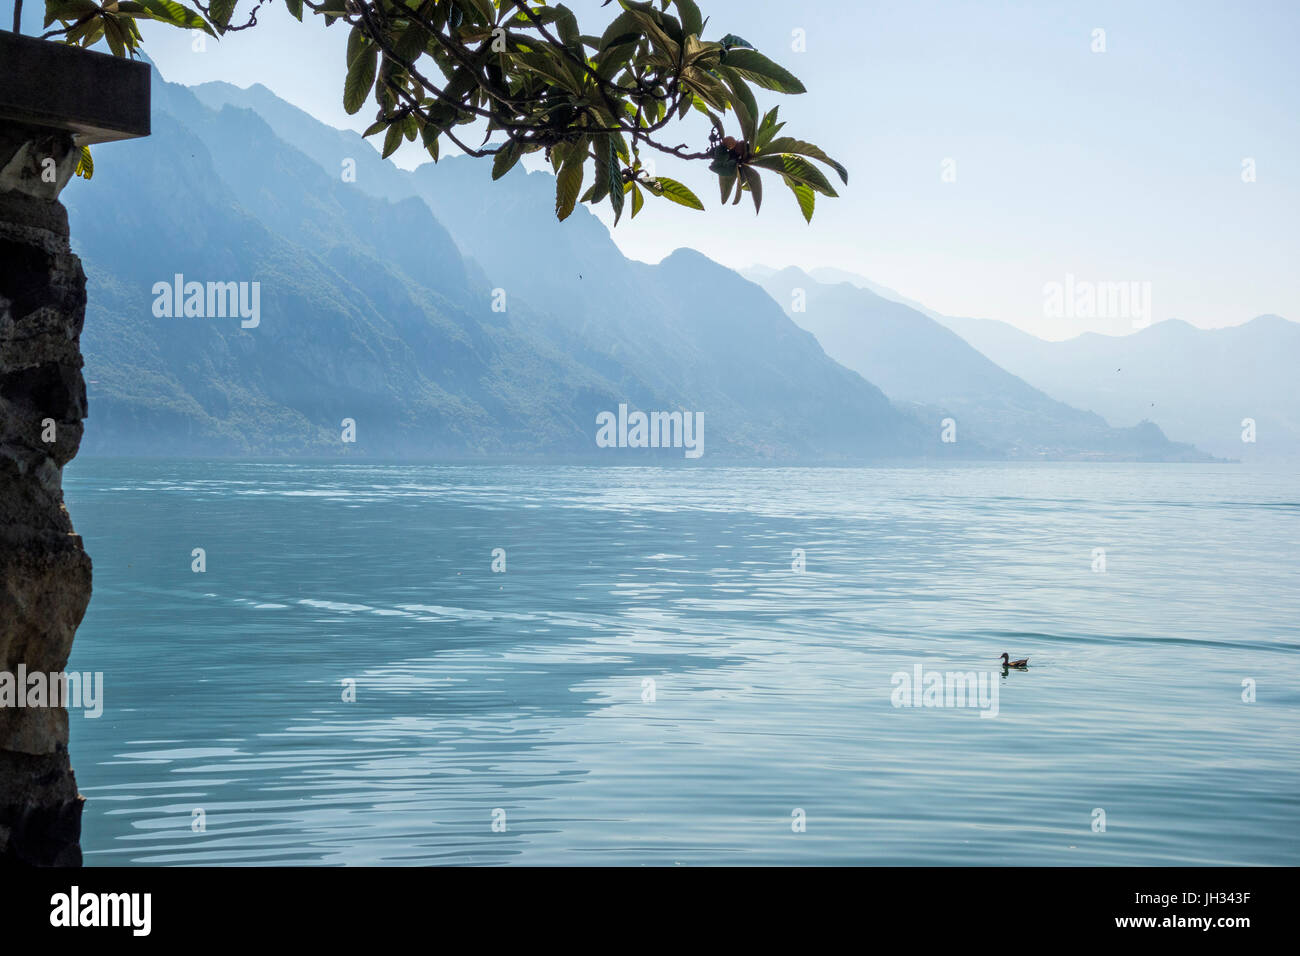 Lake View from Riva Di Solto, Lago Iseo, Italy - Stock Image